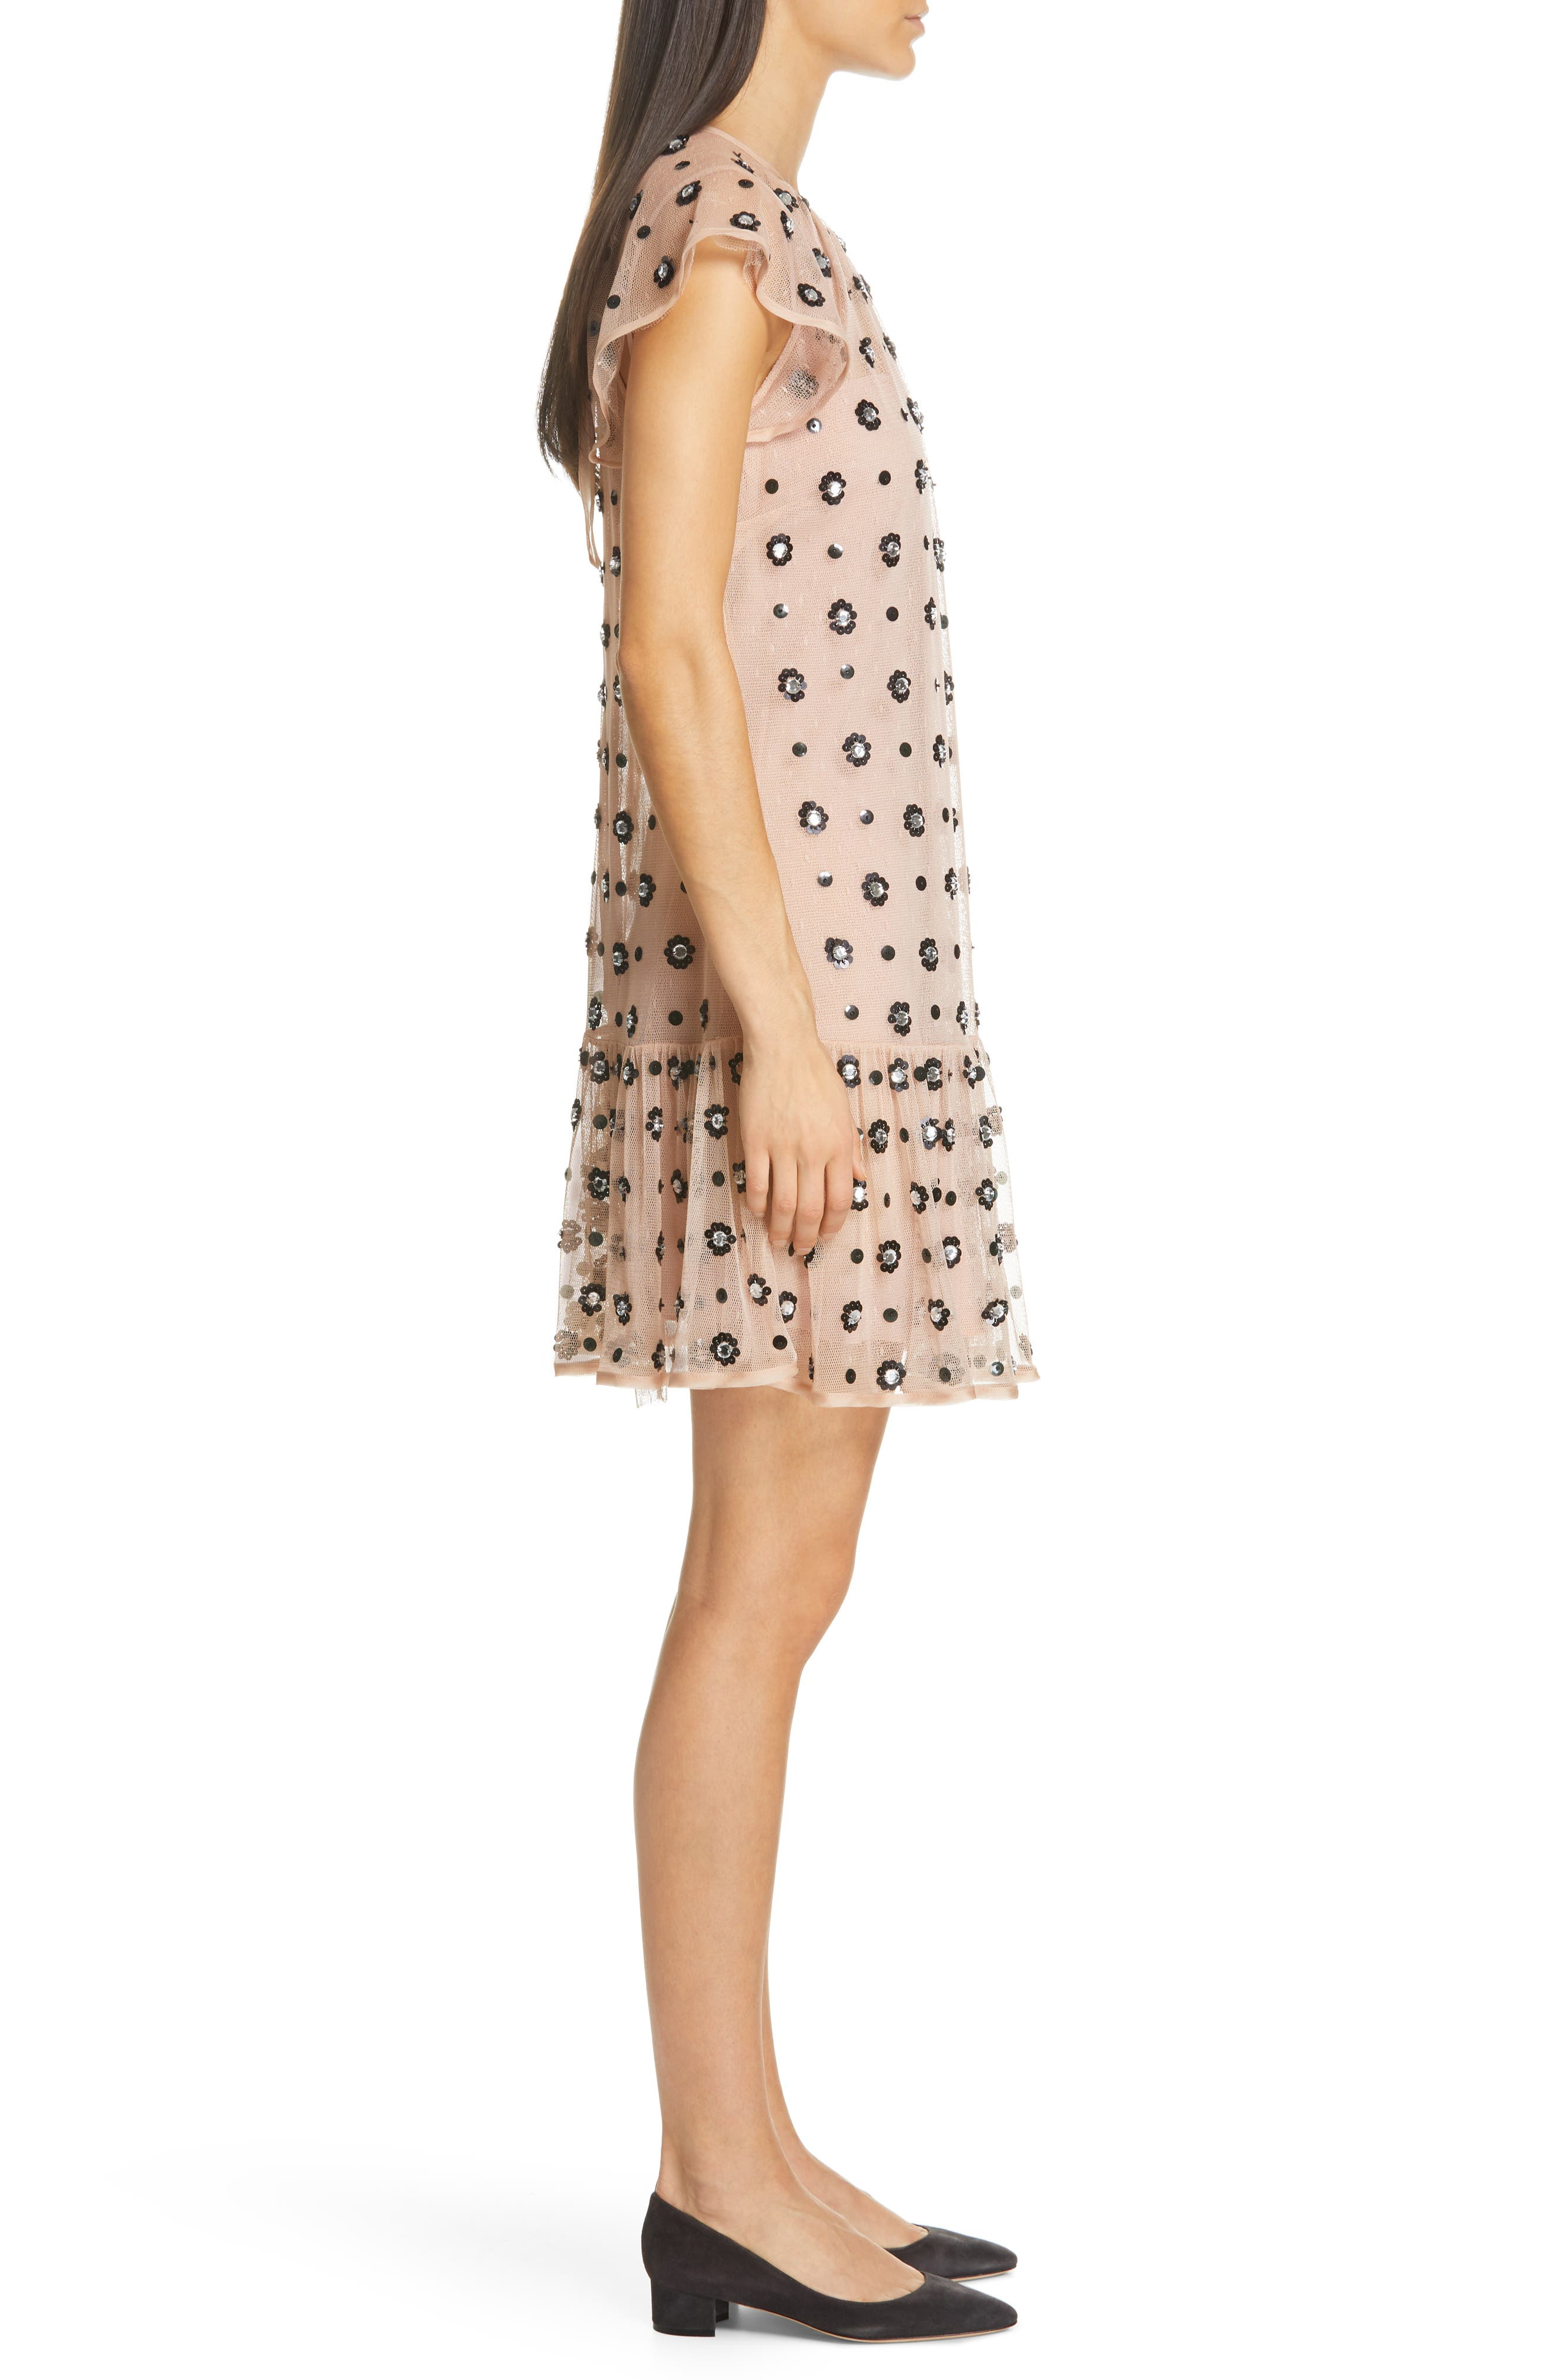 RED VALENTINO,                             Floral Sequin Drop Waist Dress,                             Alternate thumbnail 3, color,                             NUDO